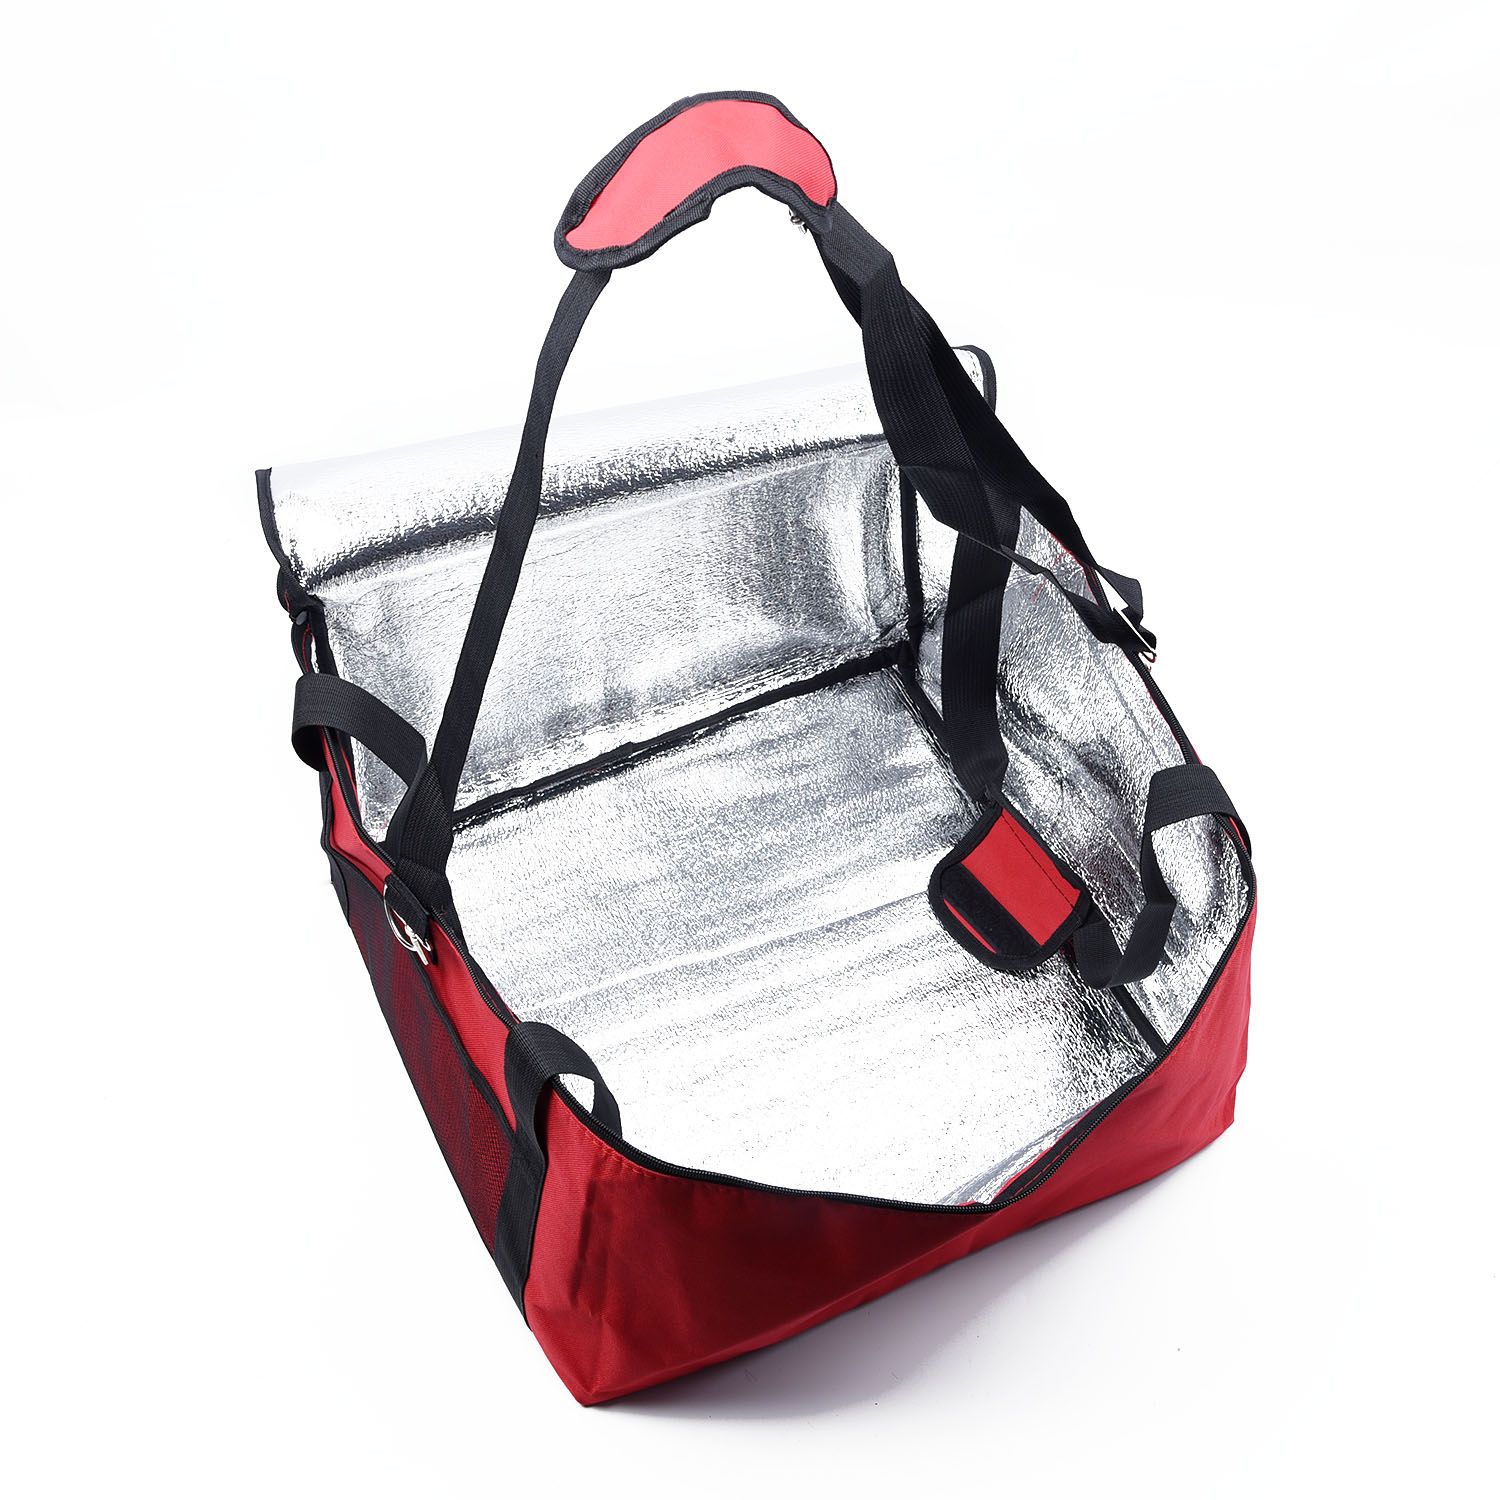 Pizza Delivery Bag Thermal Food Storage Holds 16 inch Oxford Cloth Hot Durable